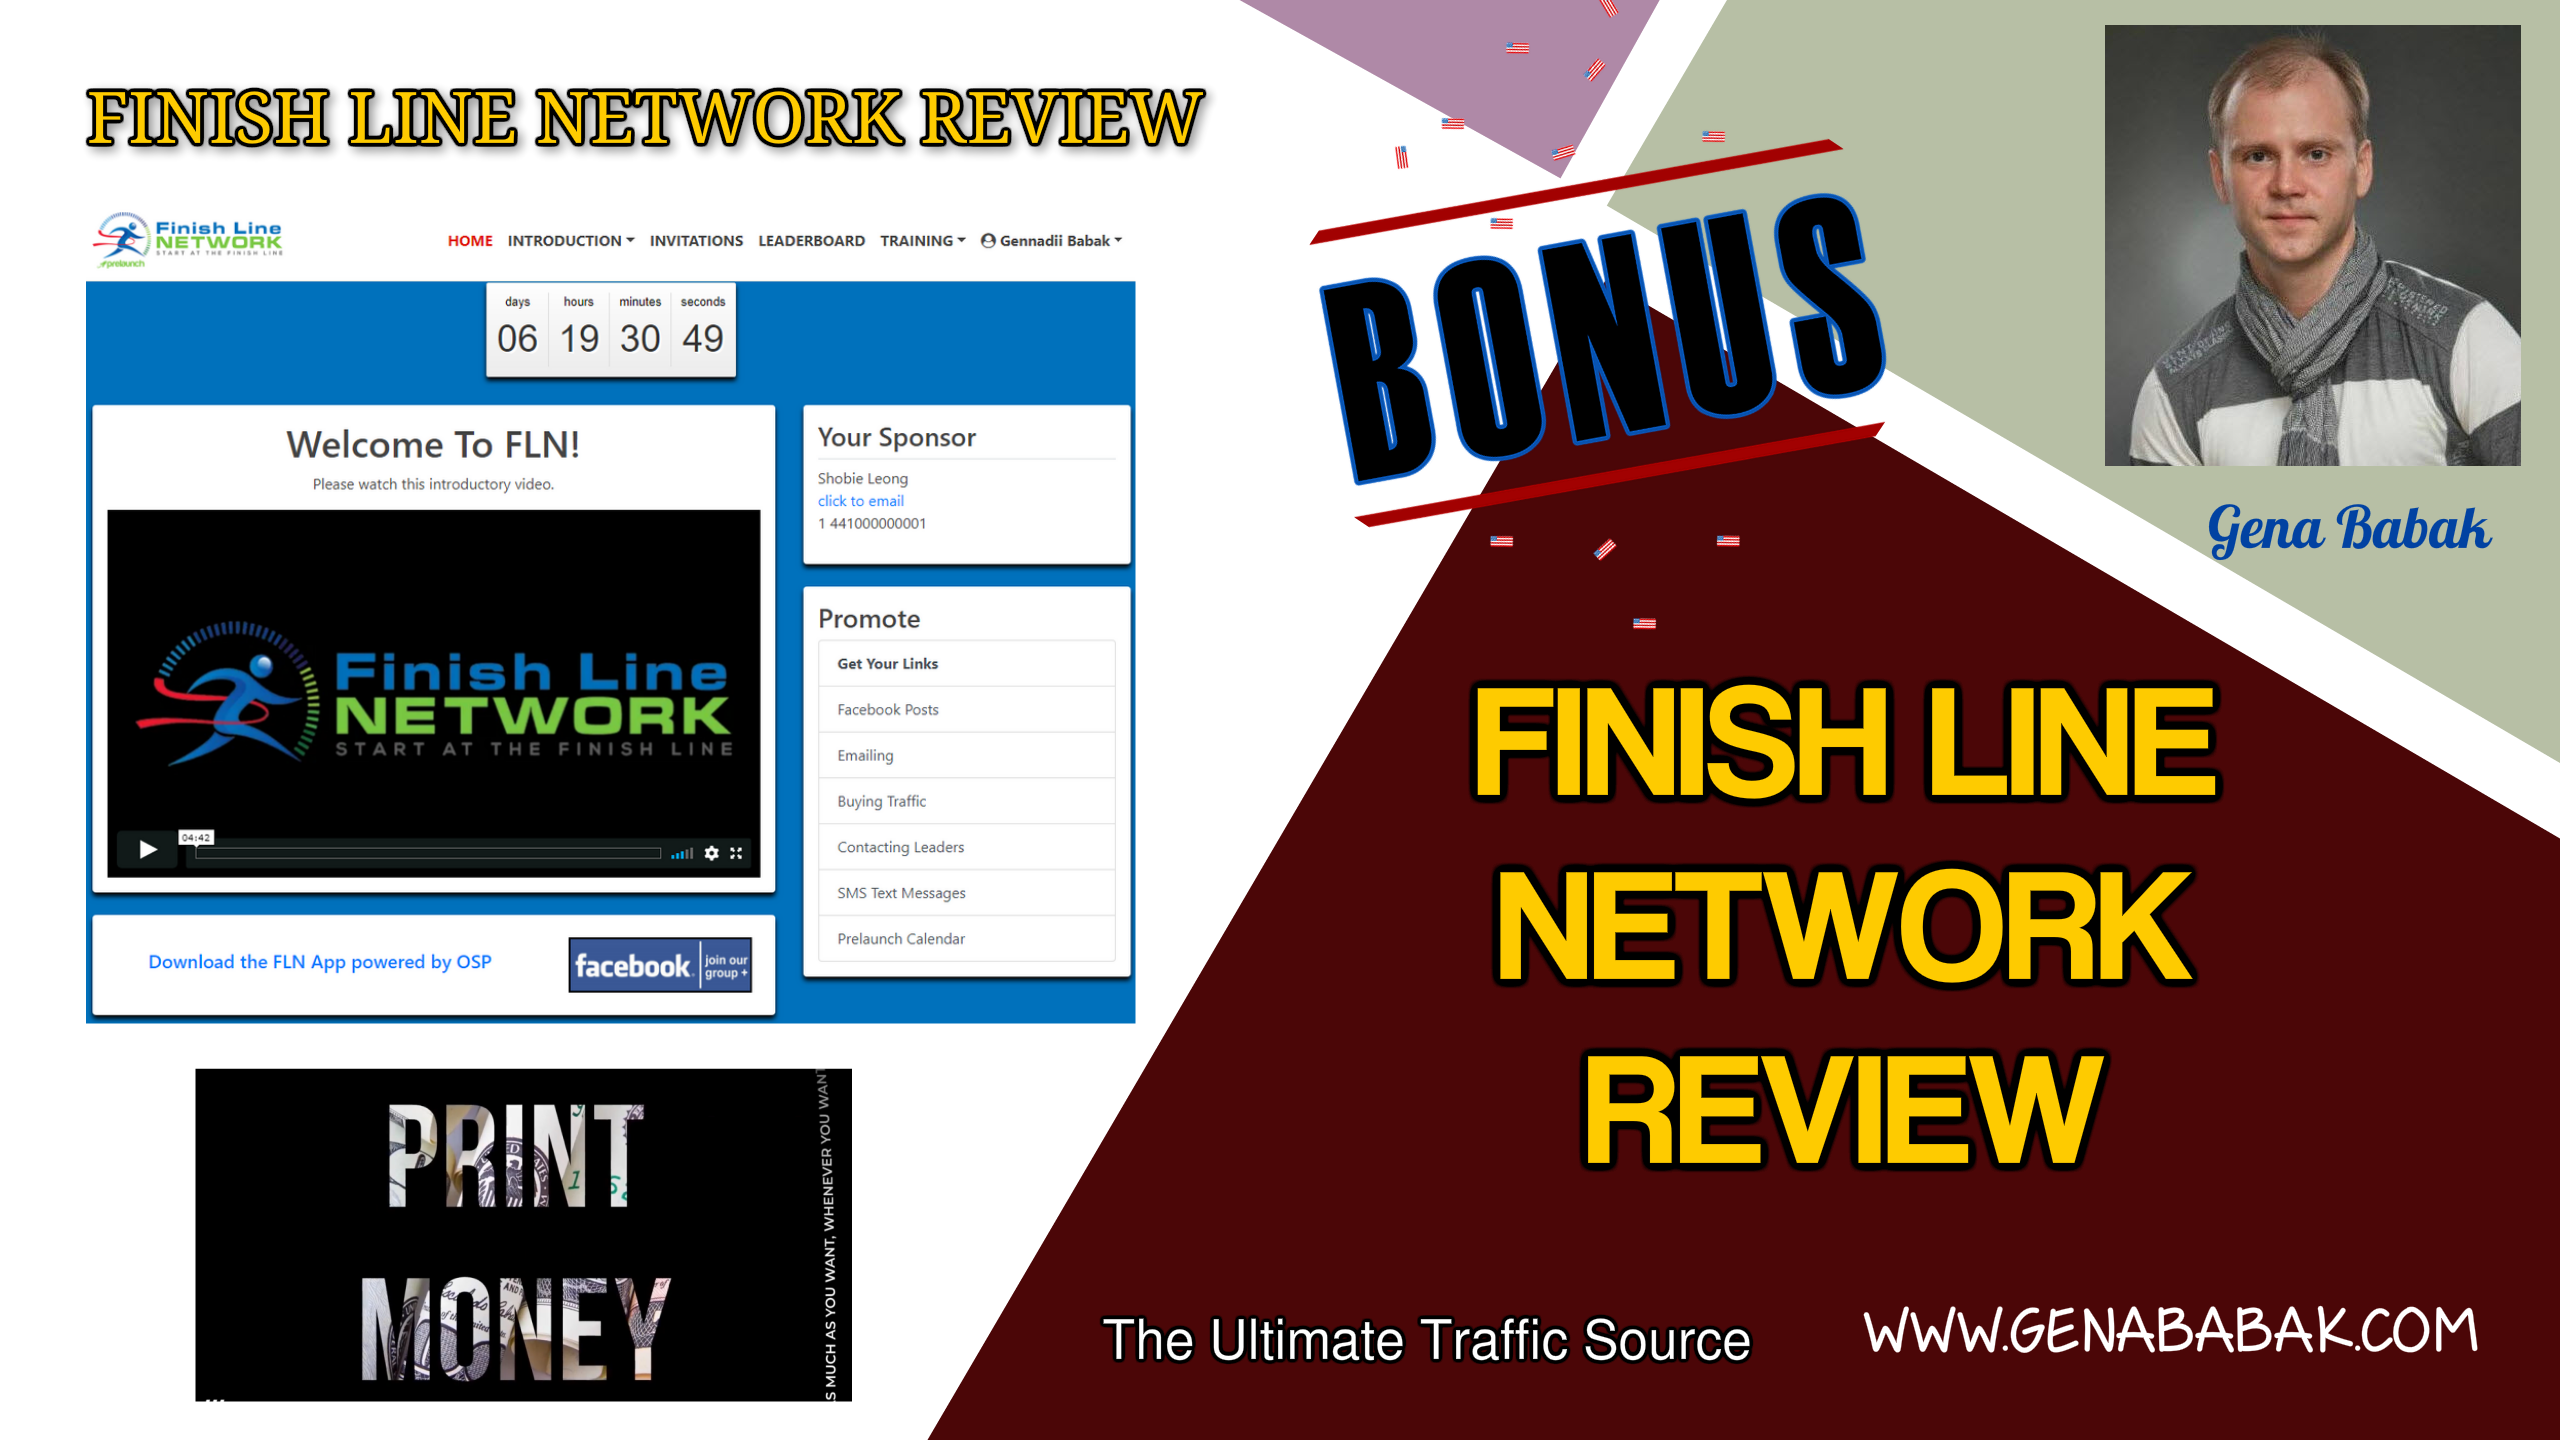 Finish Line Network Review by Gena Babak